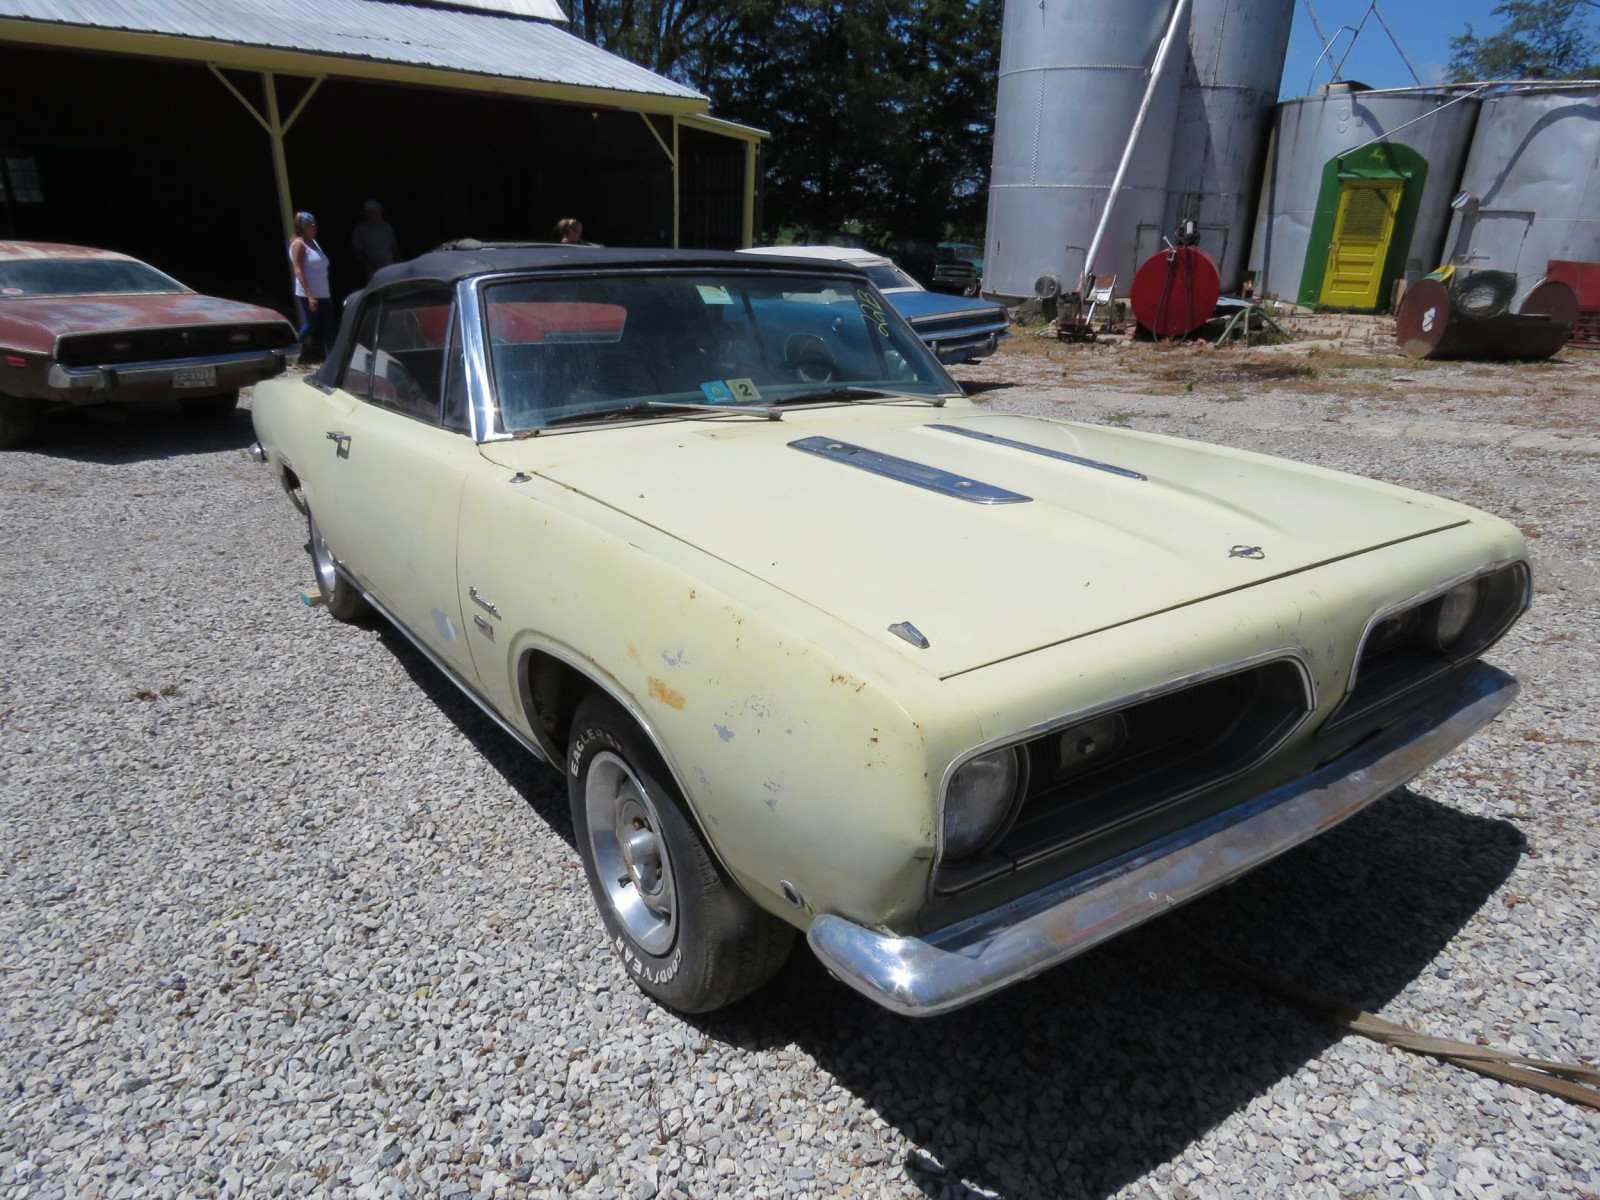 1968 Plymouth Barracuda Convertible - Image 3